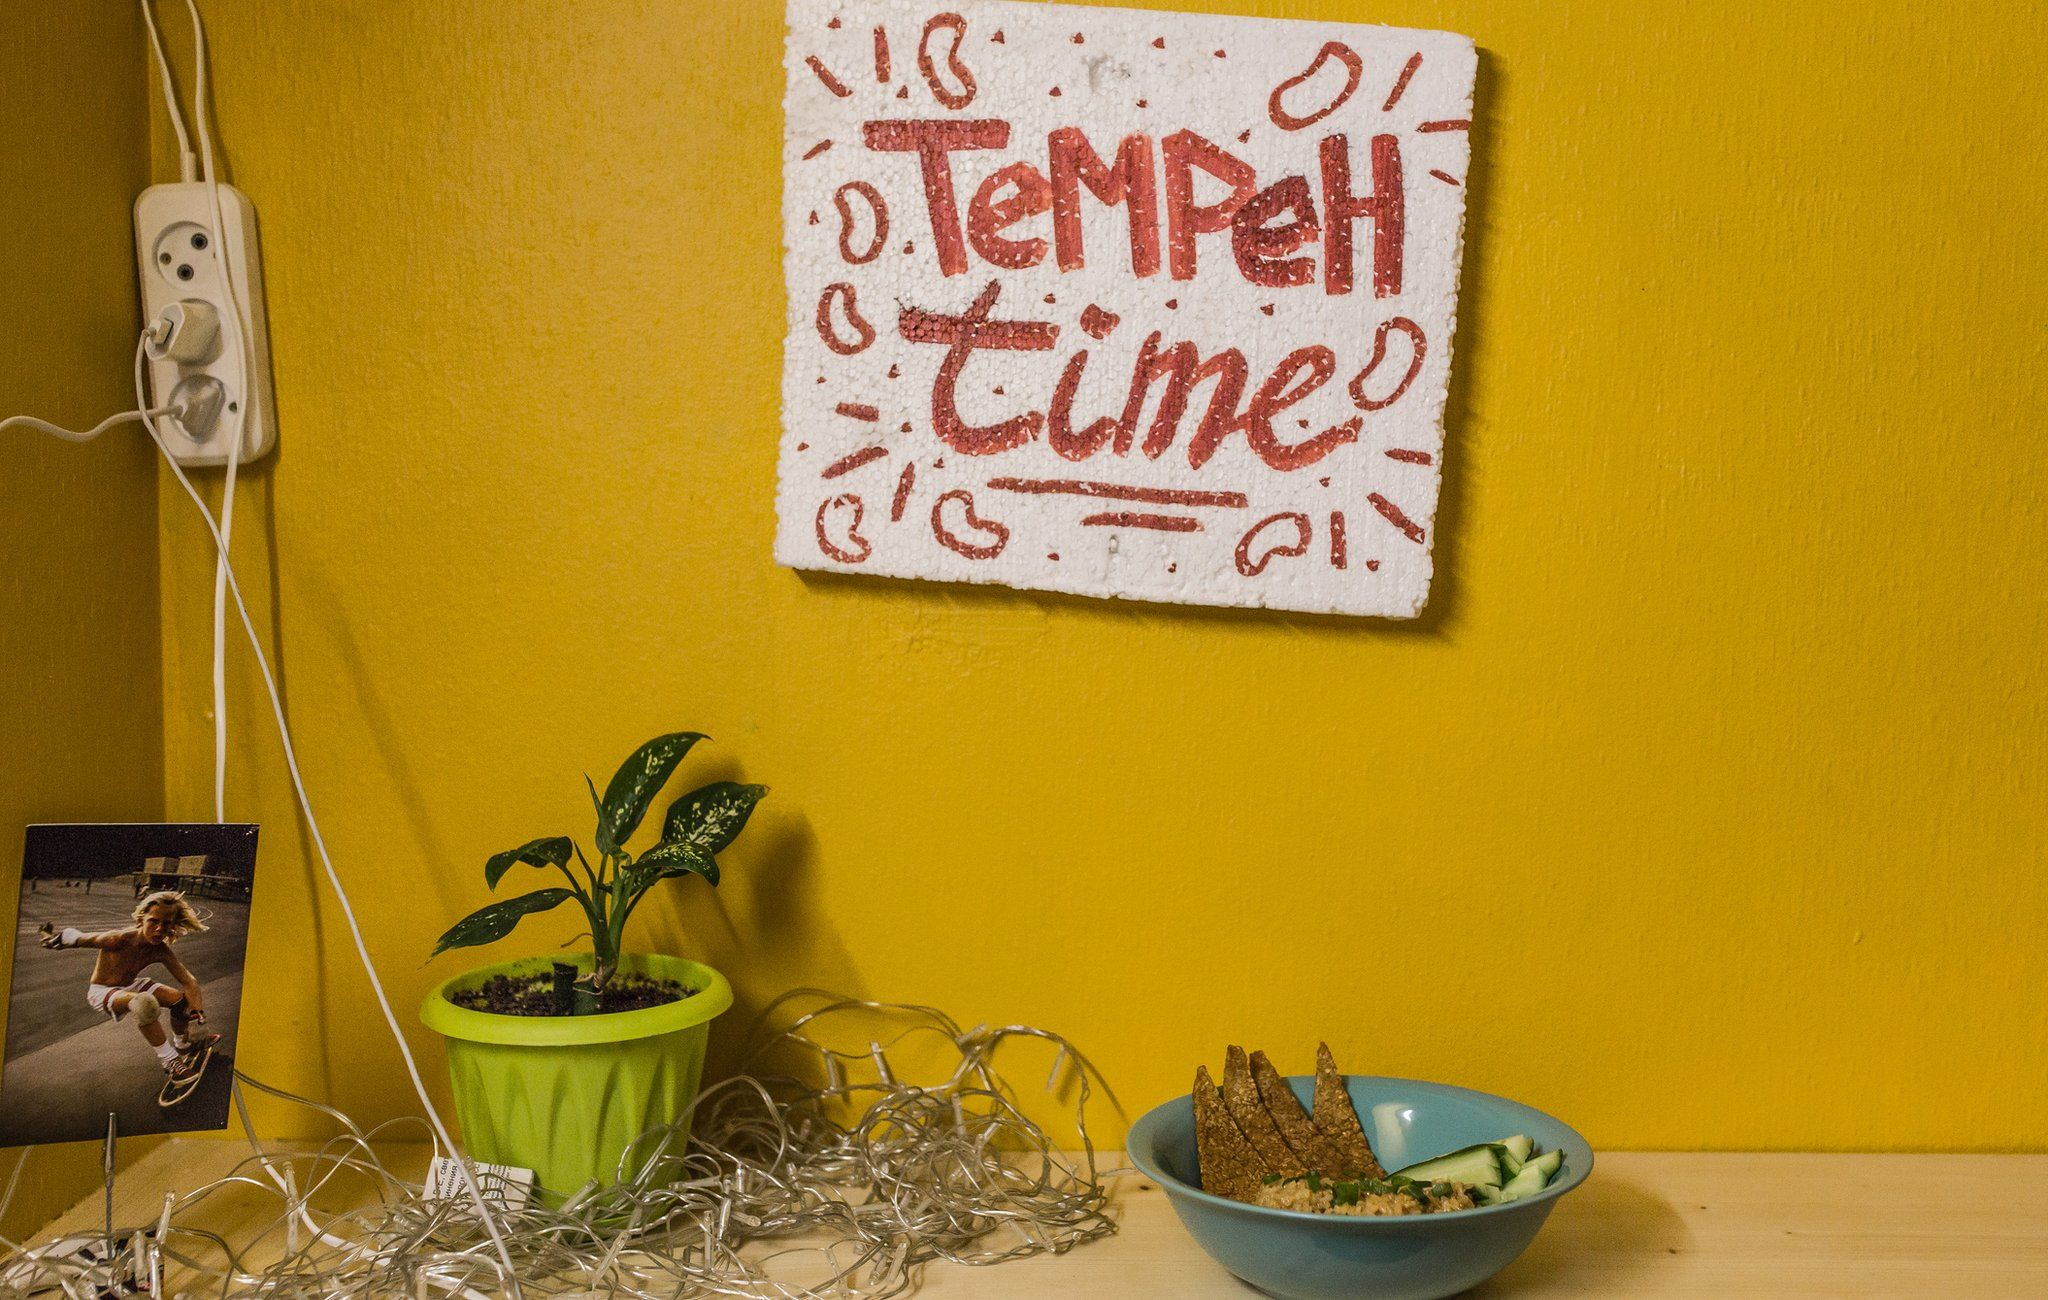 Polystyrene sign with 'Tempeh Time' painted on it in red above a bowl of food, on a bright yellow wall